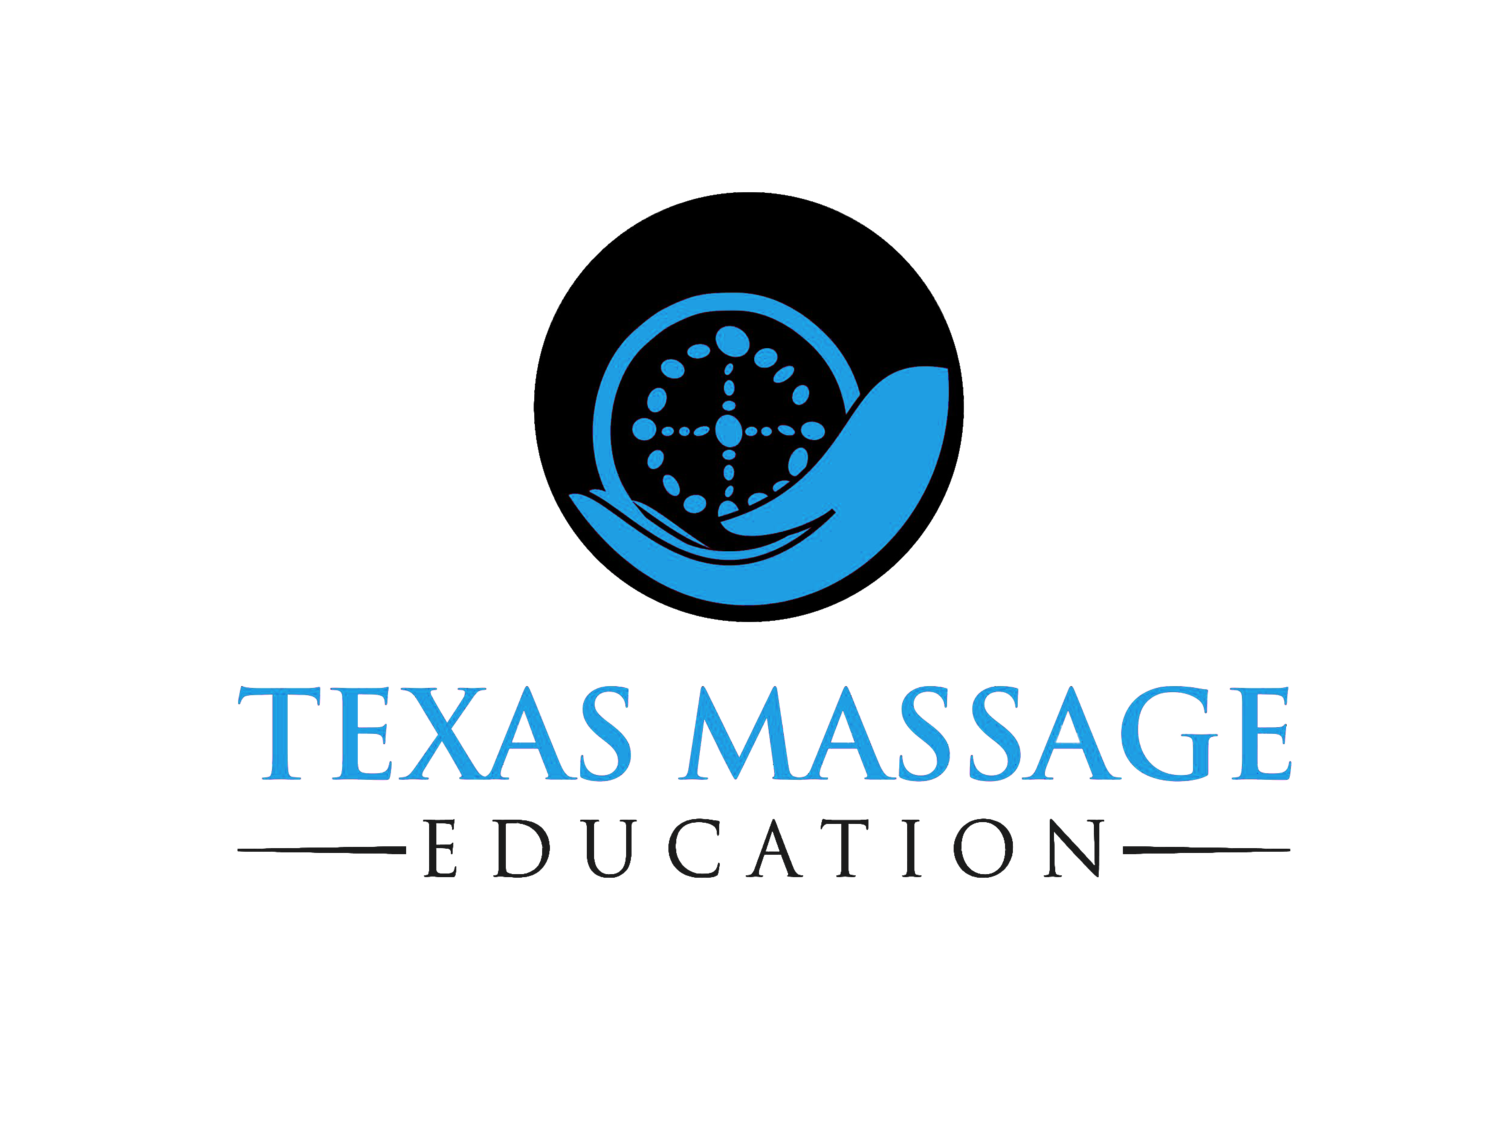 Texas Massage Education